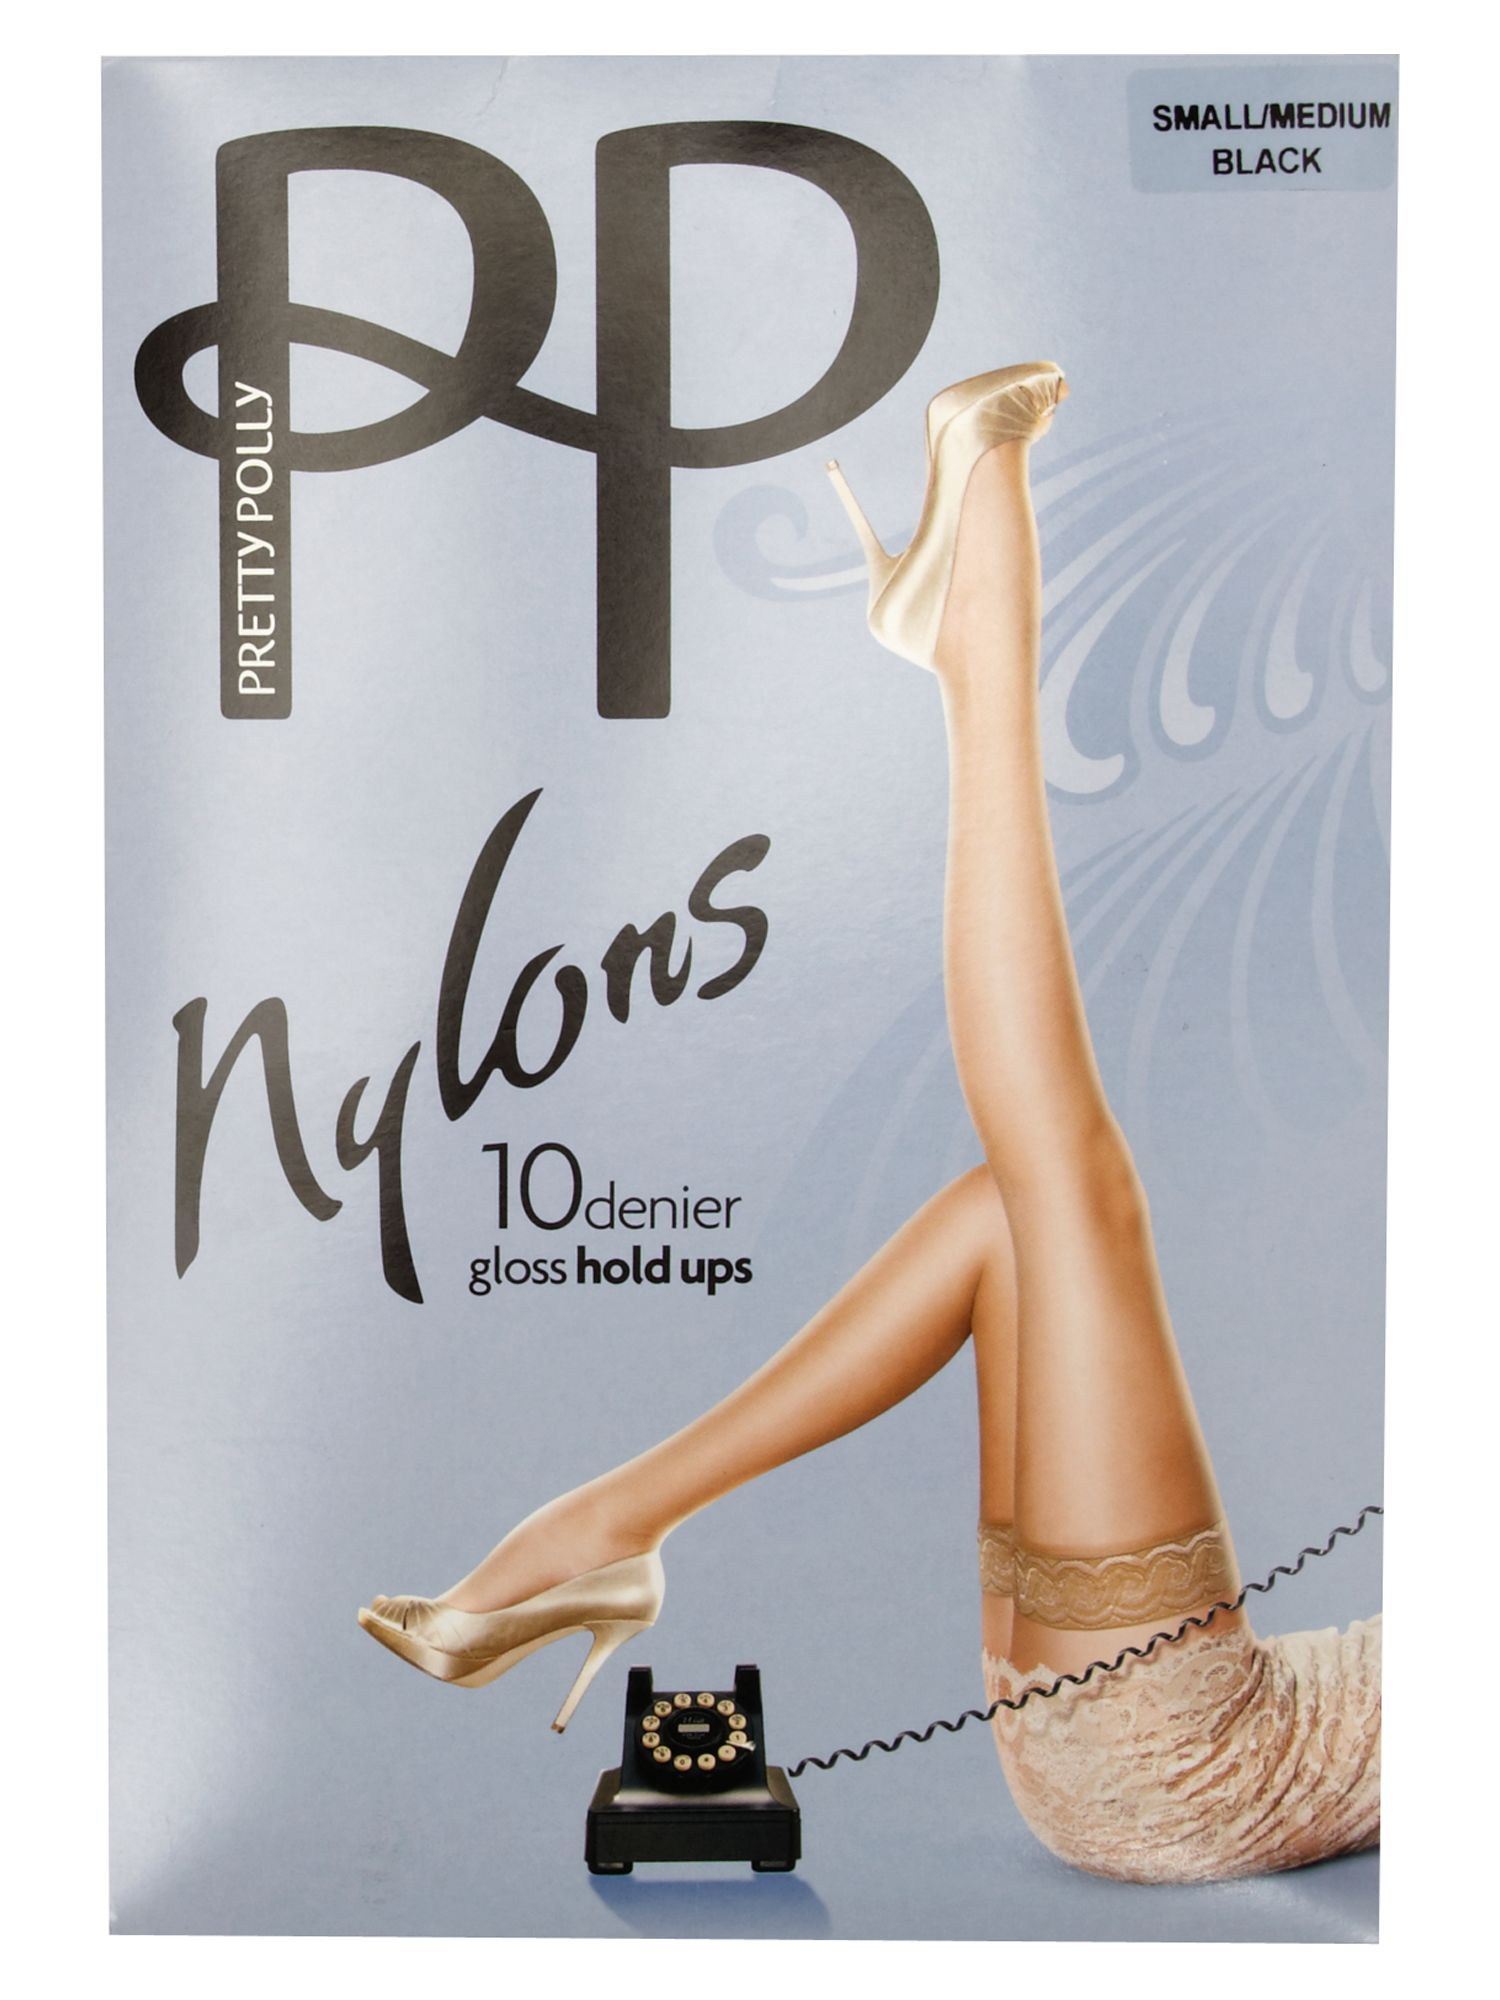 10 den nylon hold ups